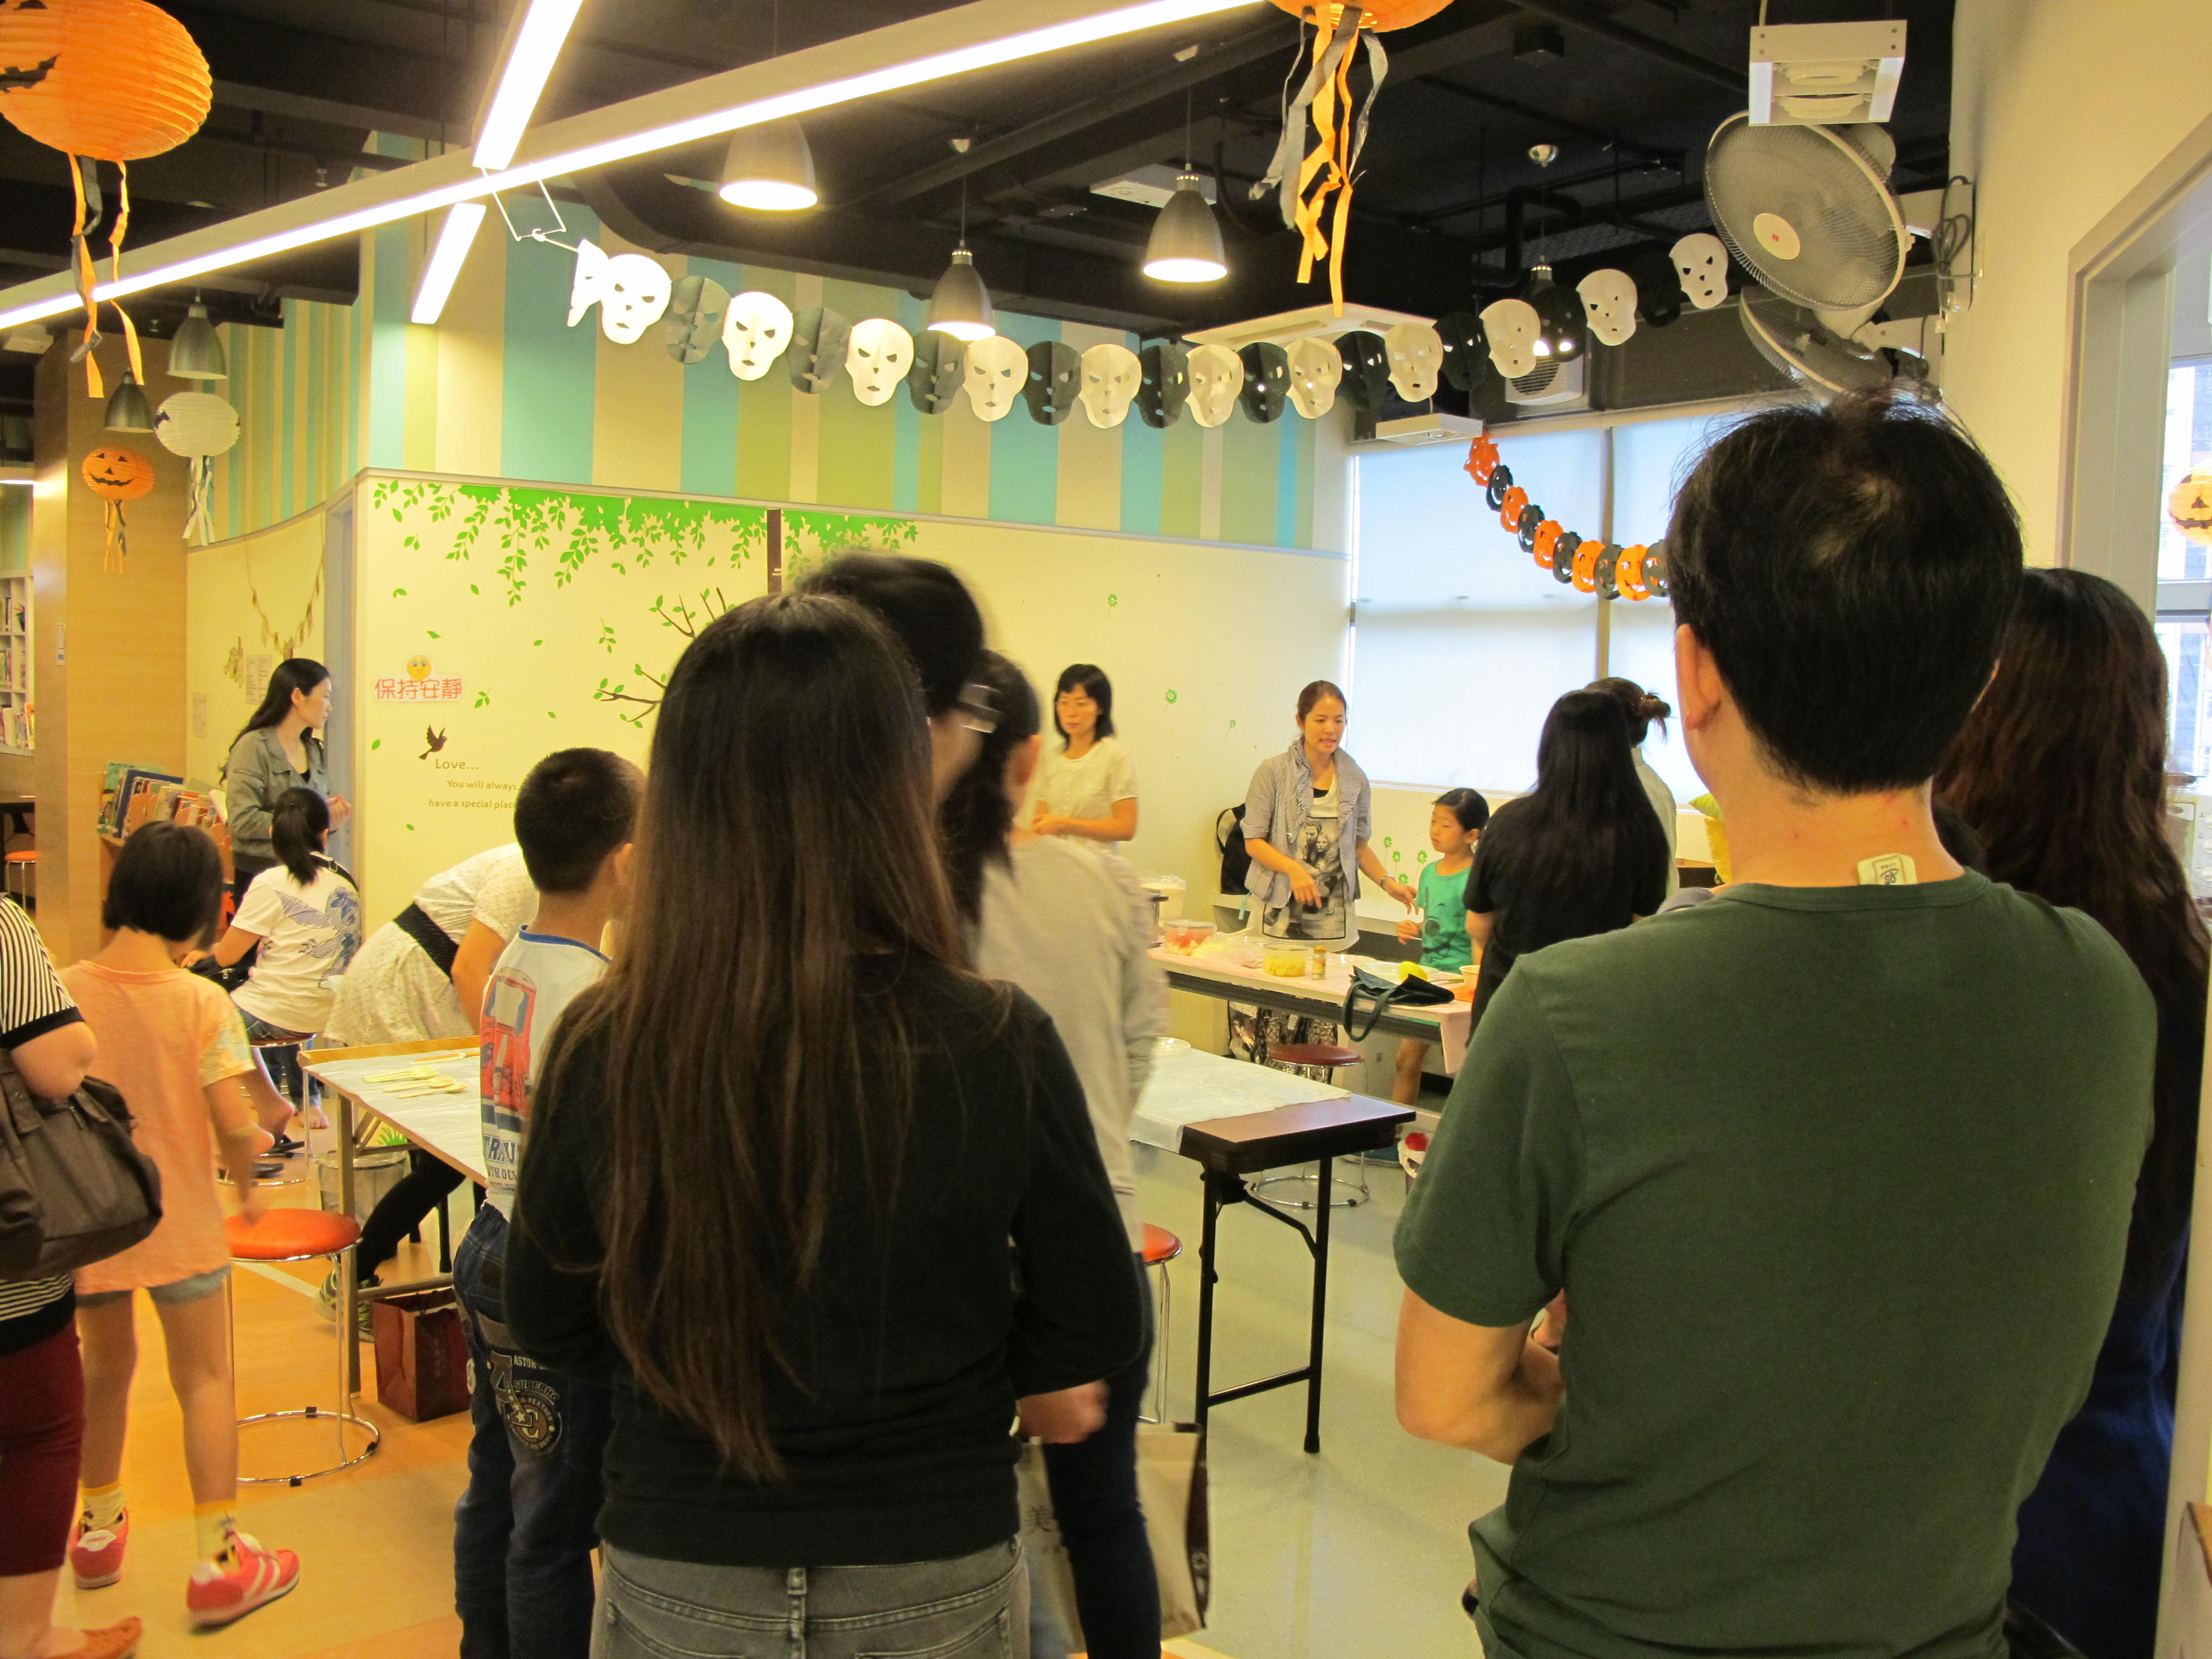 United Christian Nethersole Community Health Service Project -- 餐餐智慳嚐有營 - Photo - 27